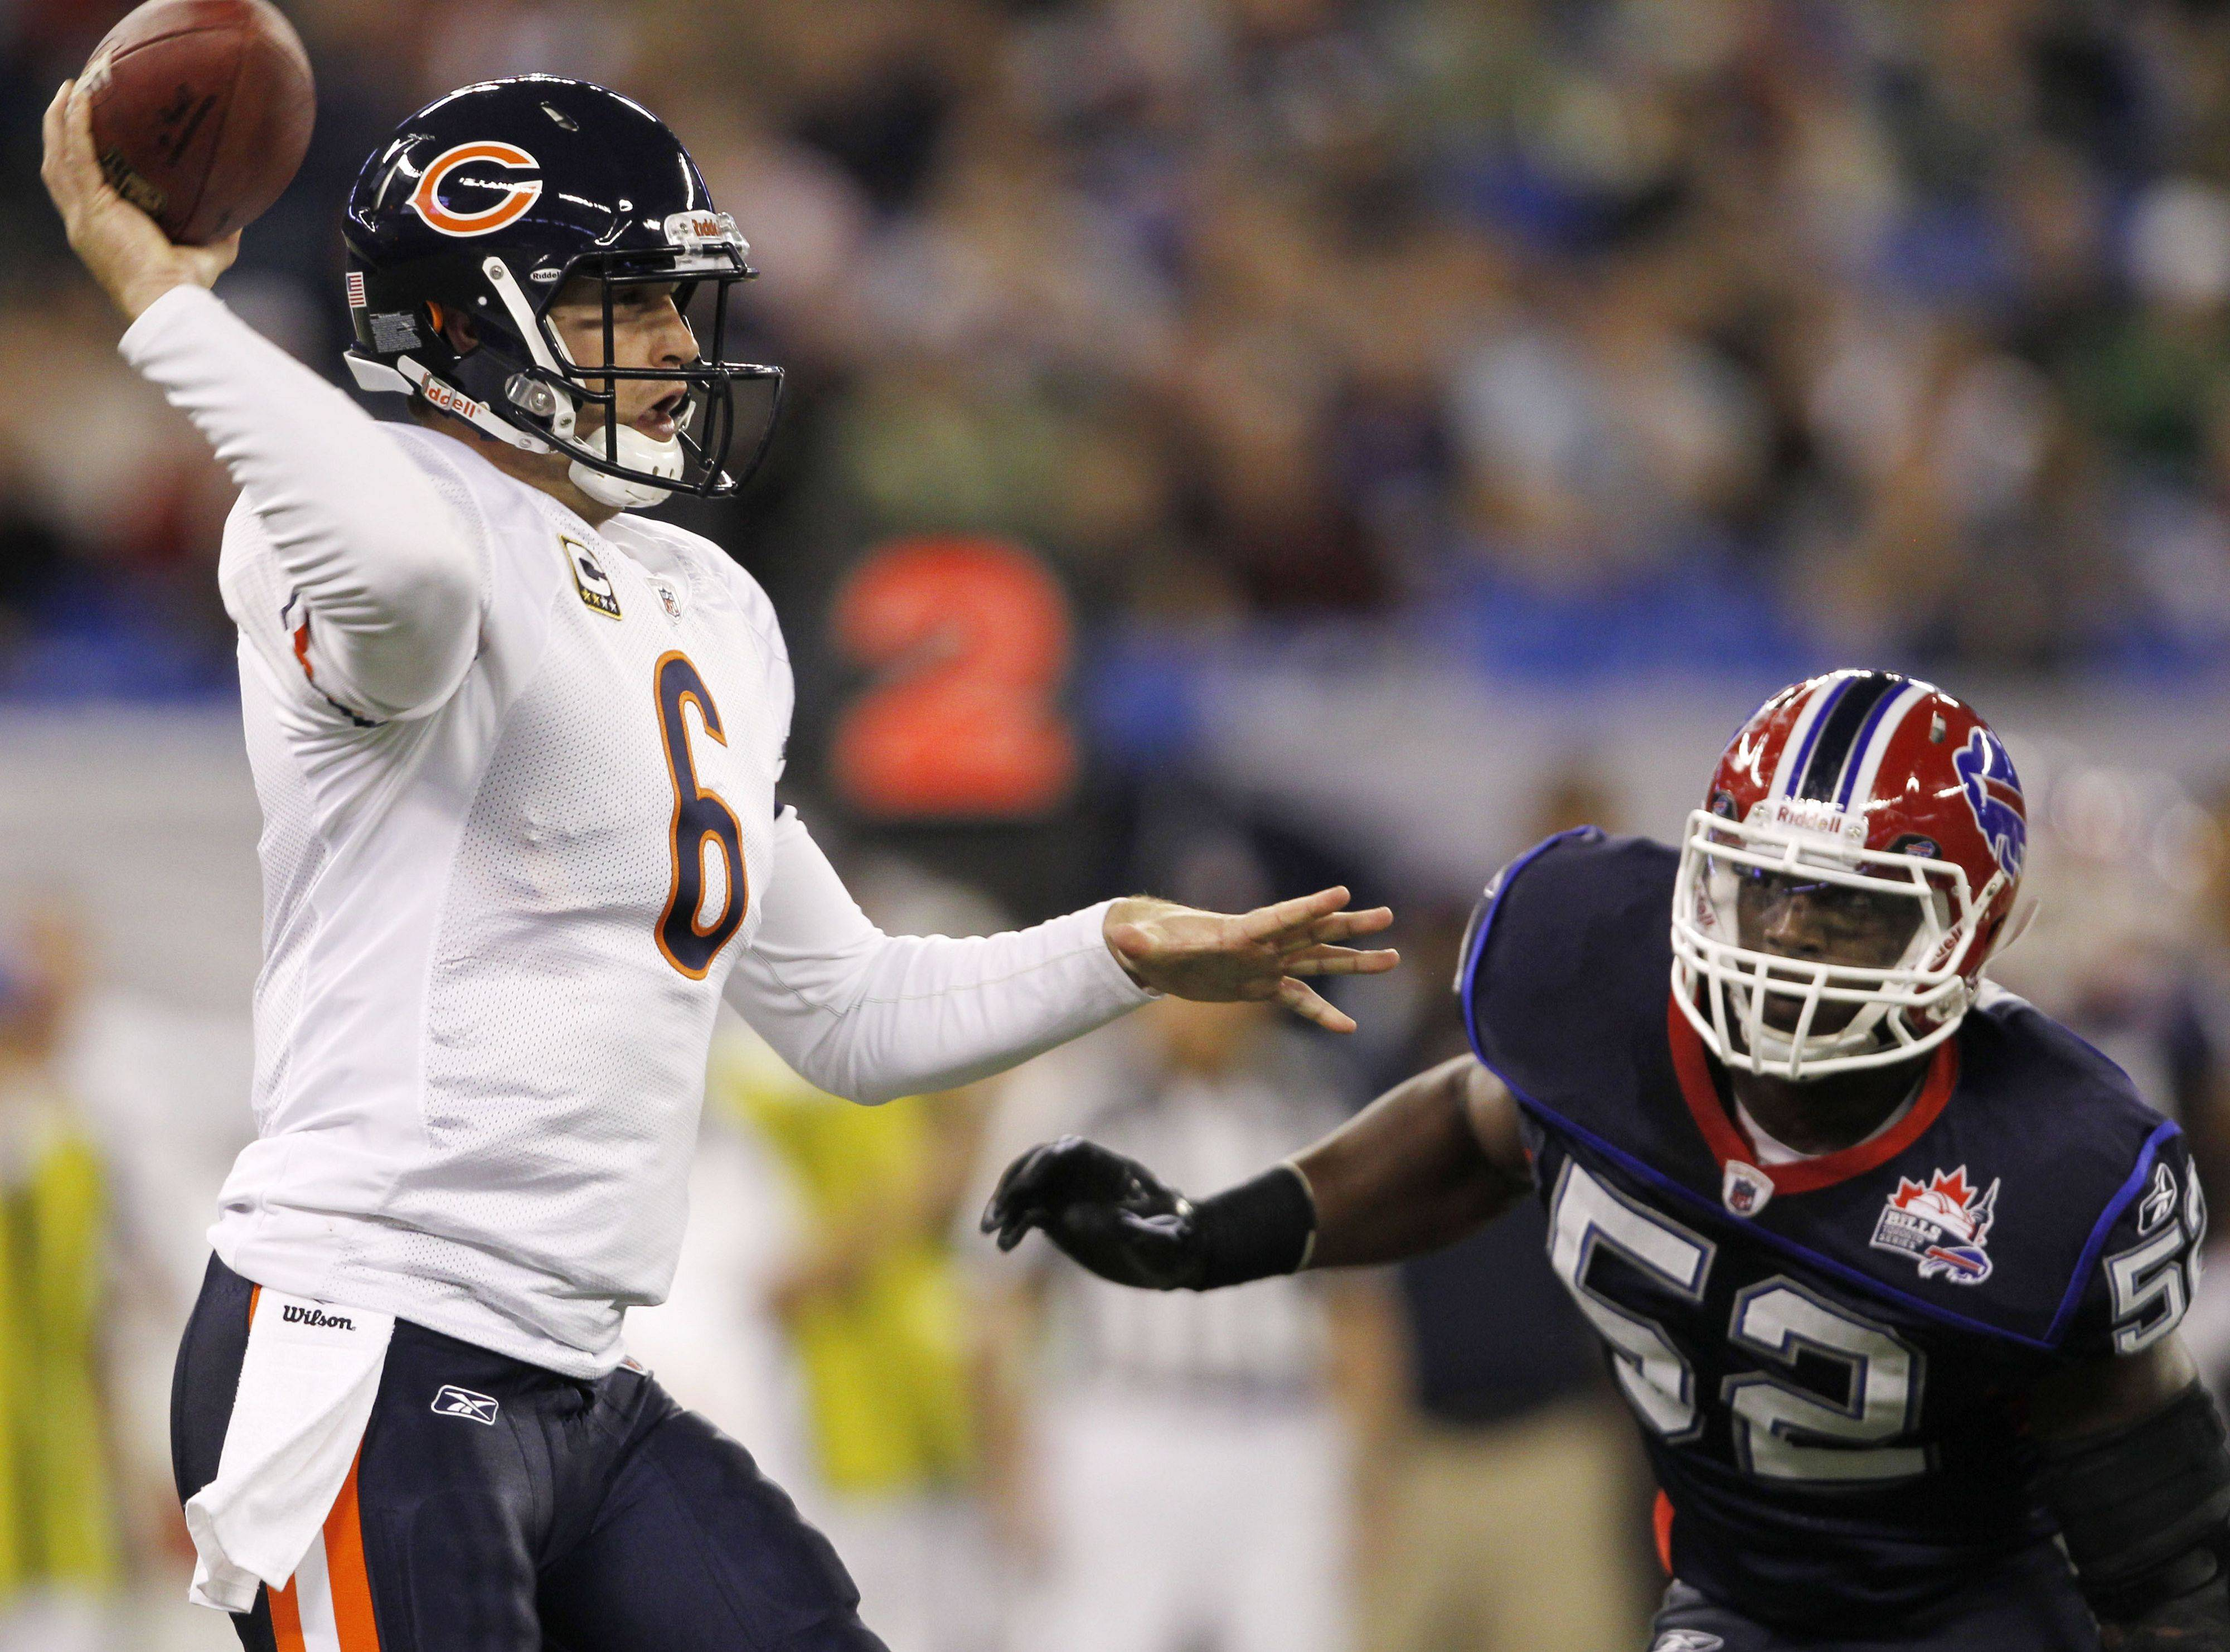 Buffalo Bills' Arthur Moats (52) pressures Chicago Bears' quarterback Jay Cutler (6) during the first half of an NFL football game at the Rogers Centre in Toronto, on Sunday, Nov. 7, 2010.